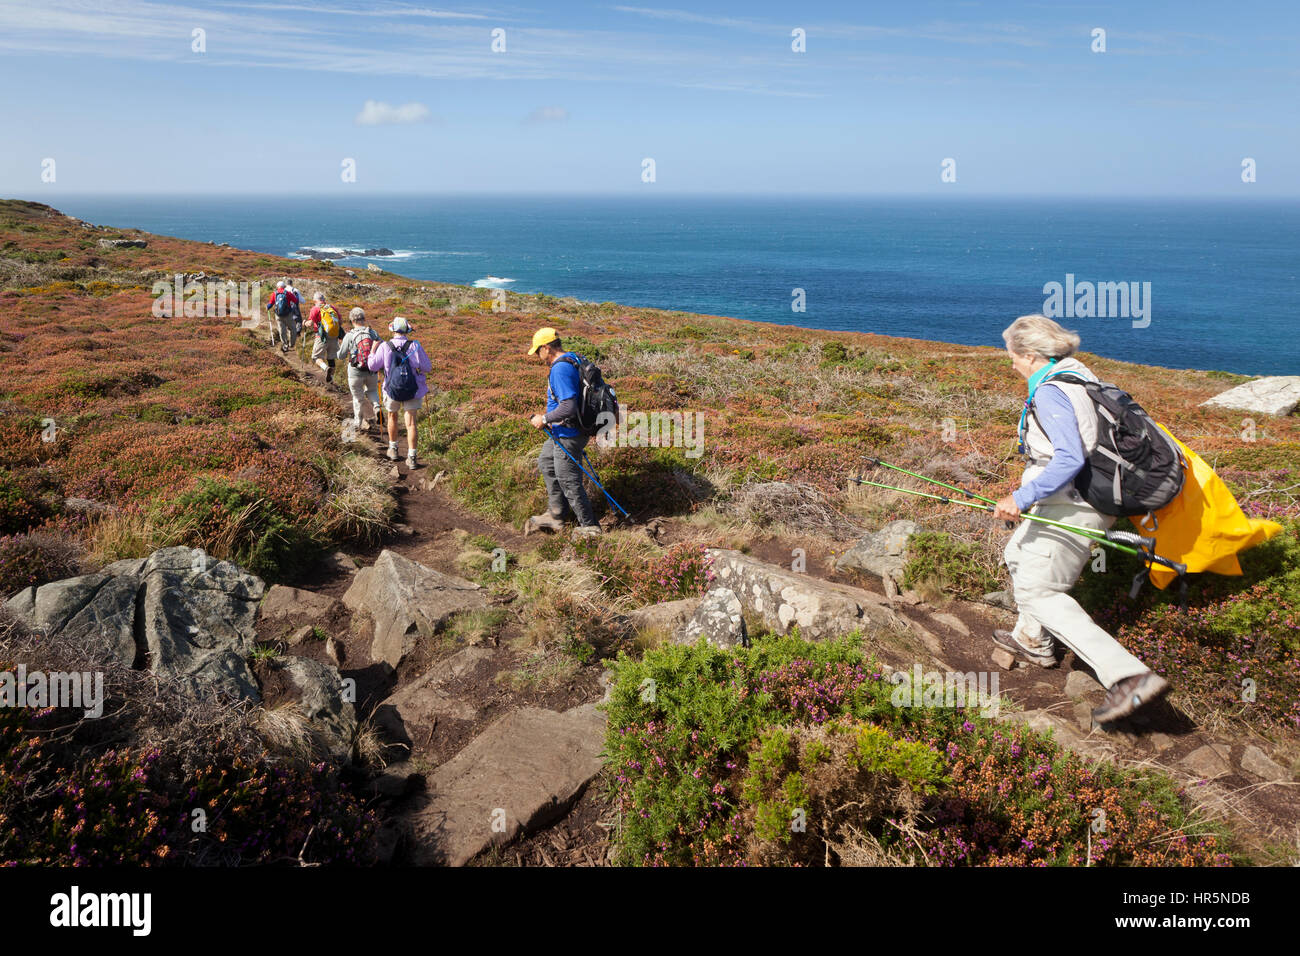 St Ives, United Kingdom - September 10, 2011: A group of adult ramblers walking the coastal path between St Ives - Stock Image